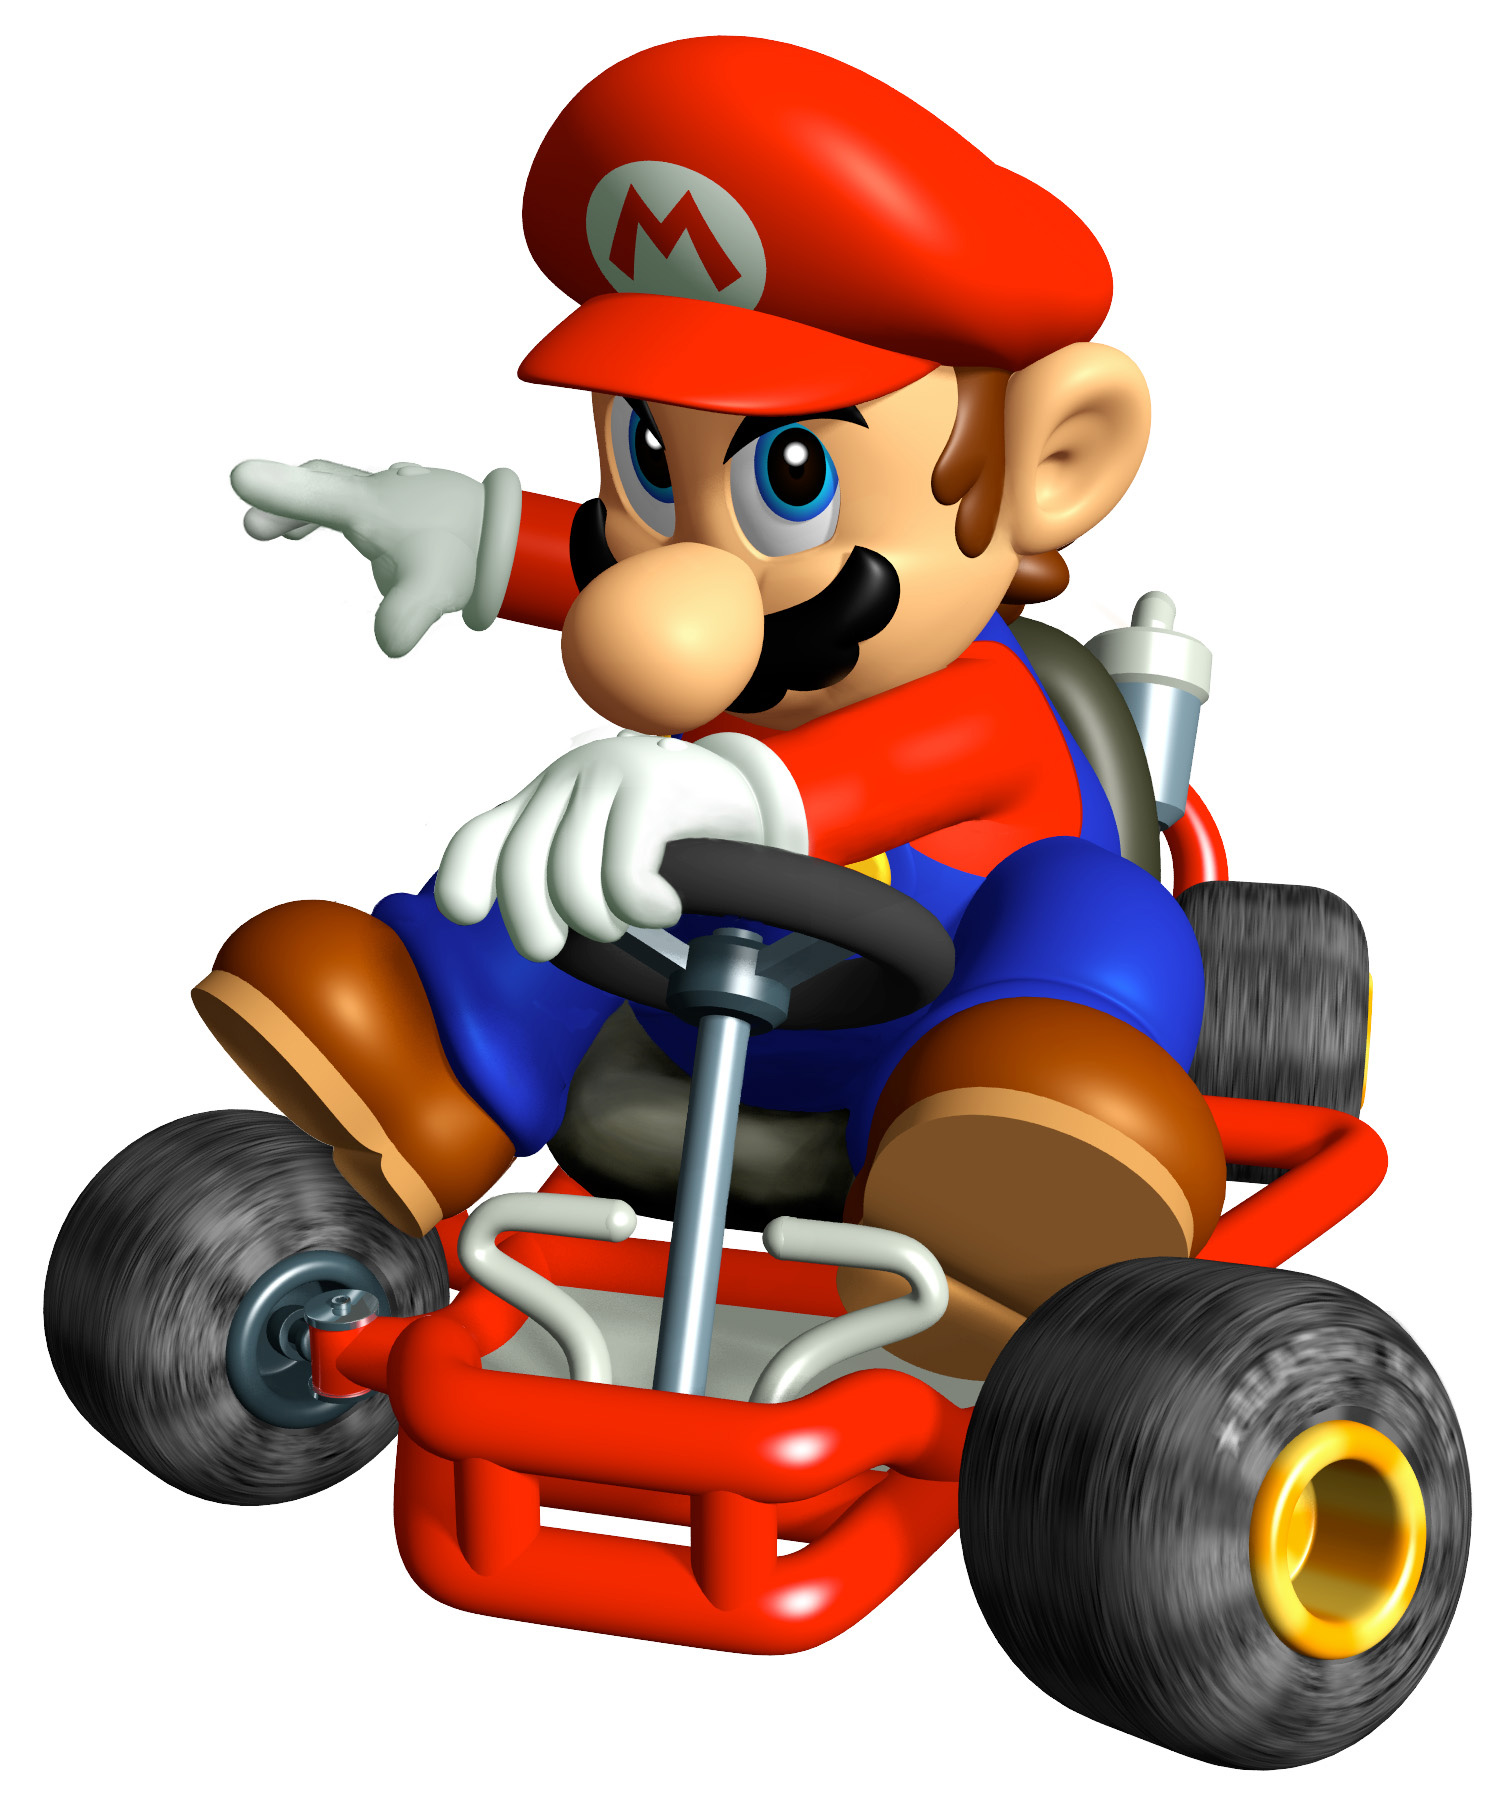 mario kart super circuit mariowiki fandom powered by wikia. Black Bedroom Furniture Sets. Home Design Ideas